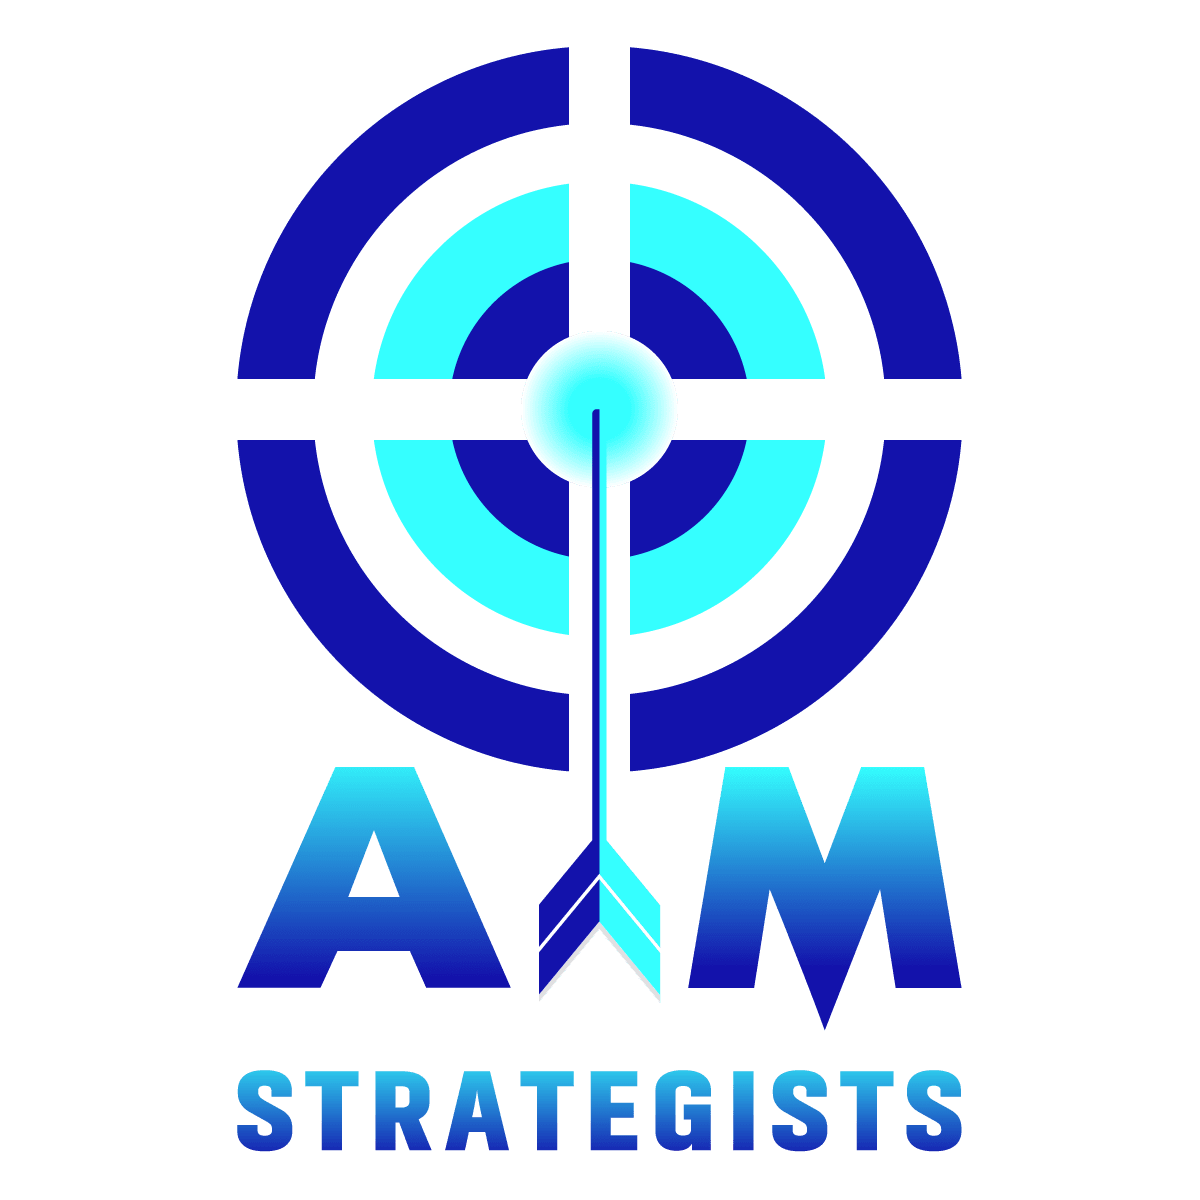 AIM STRATEGISTS FINAL LOGO